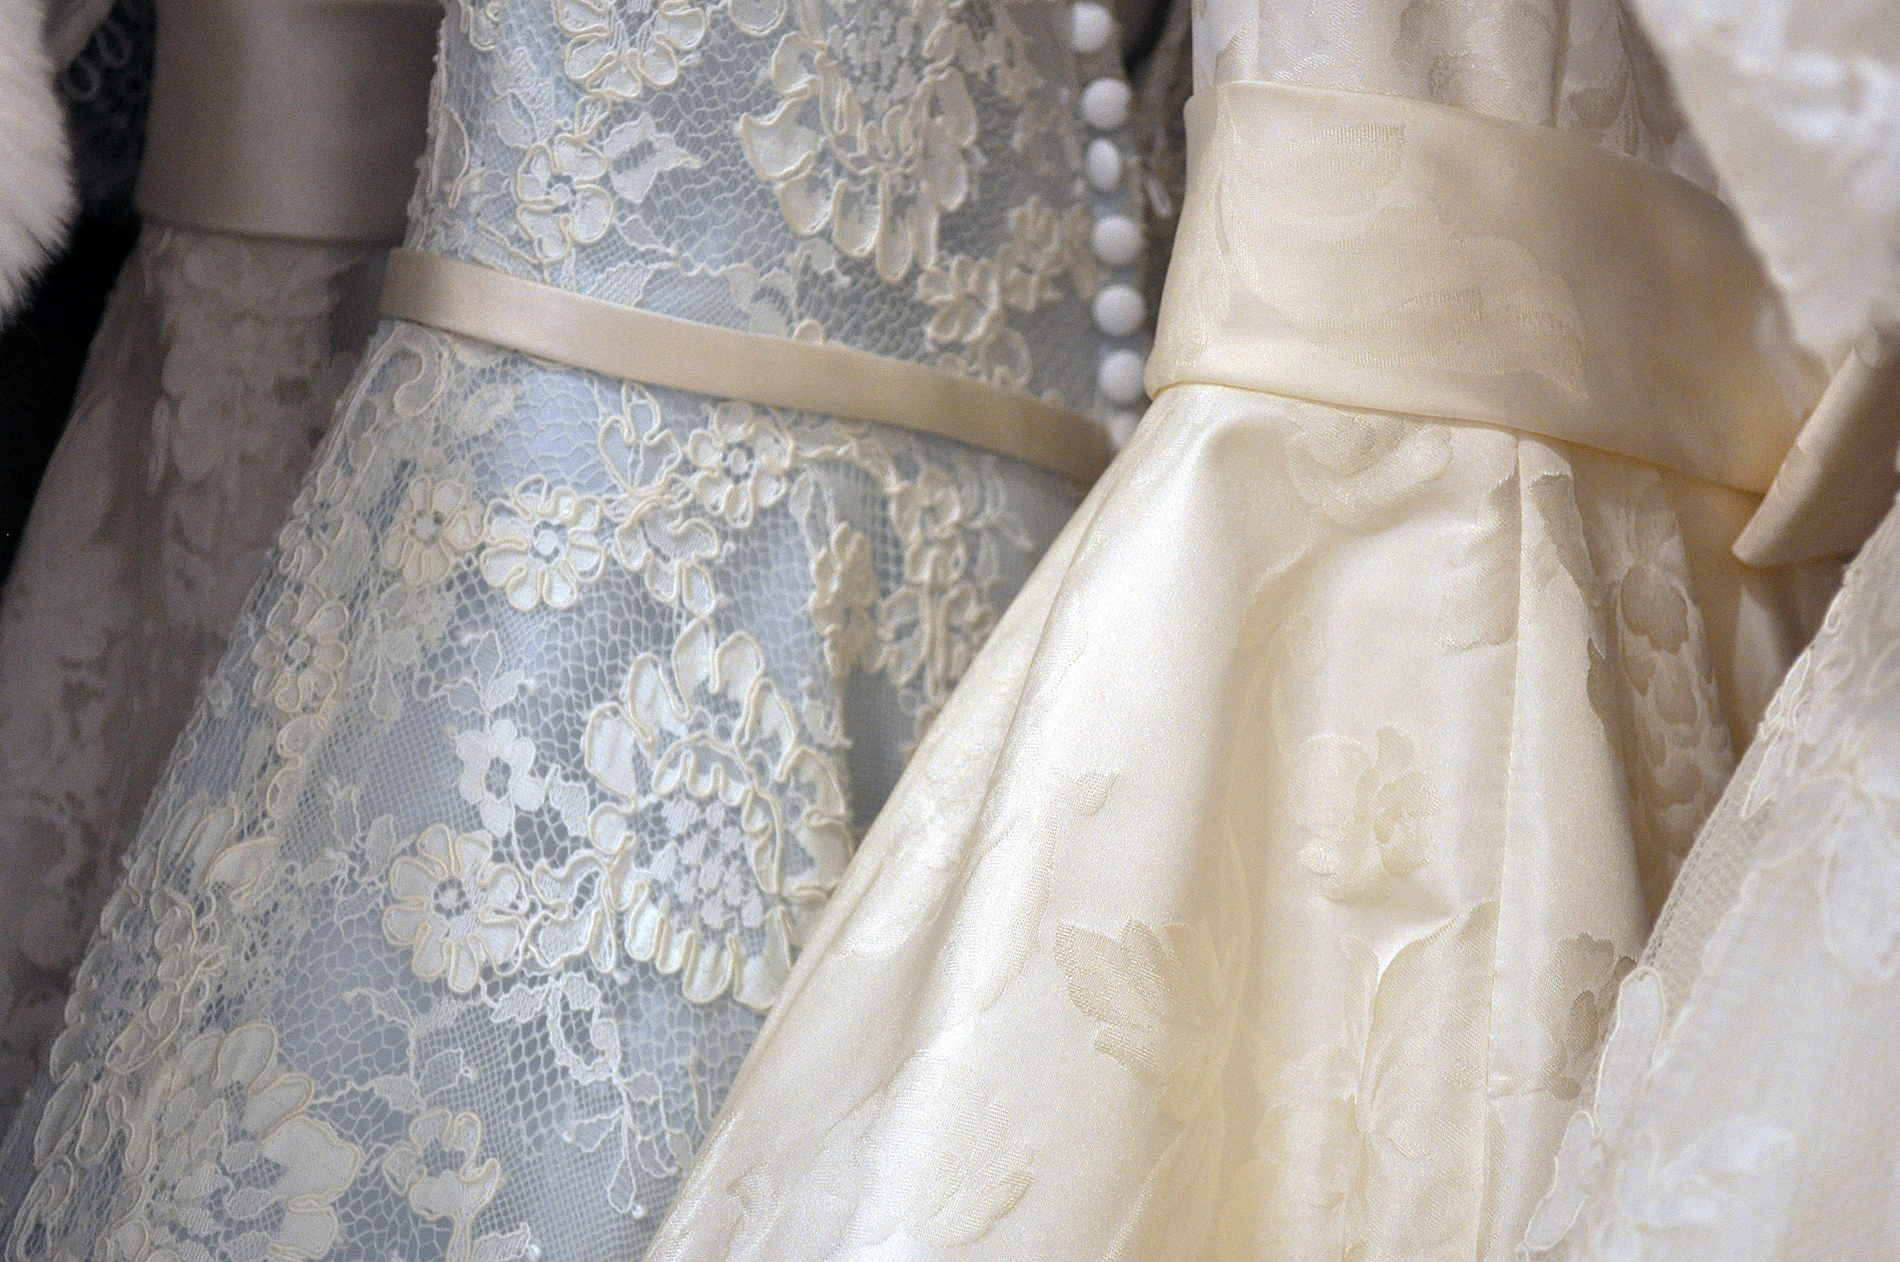 Lace evening or bridal gowns - dry cleaning - Monarch Laundry, York